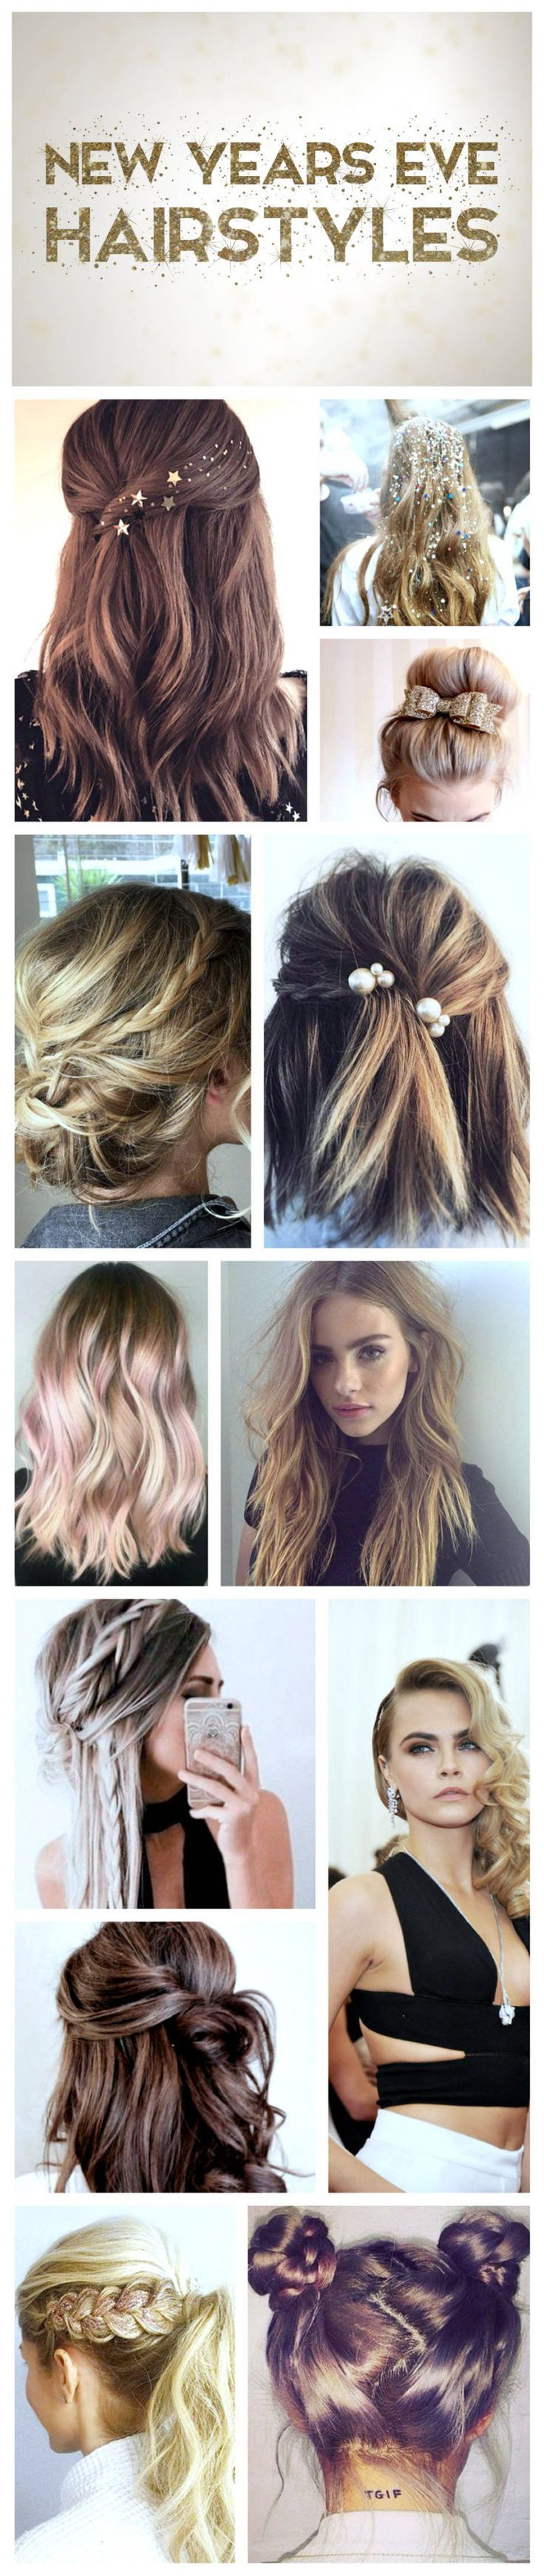 new years eve hairstyle ideas ✨ | beauty | new year's eve